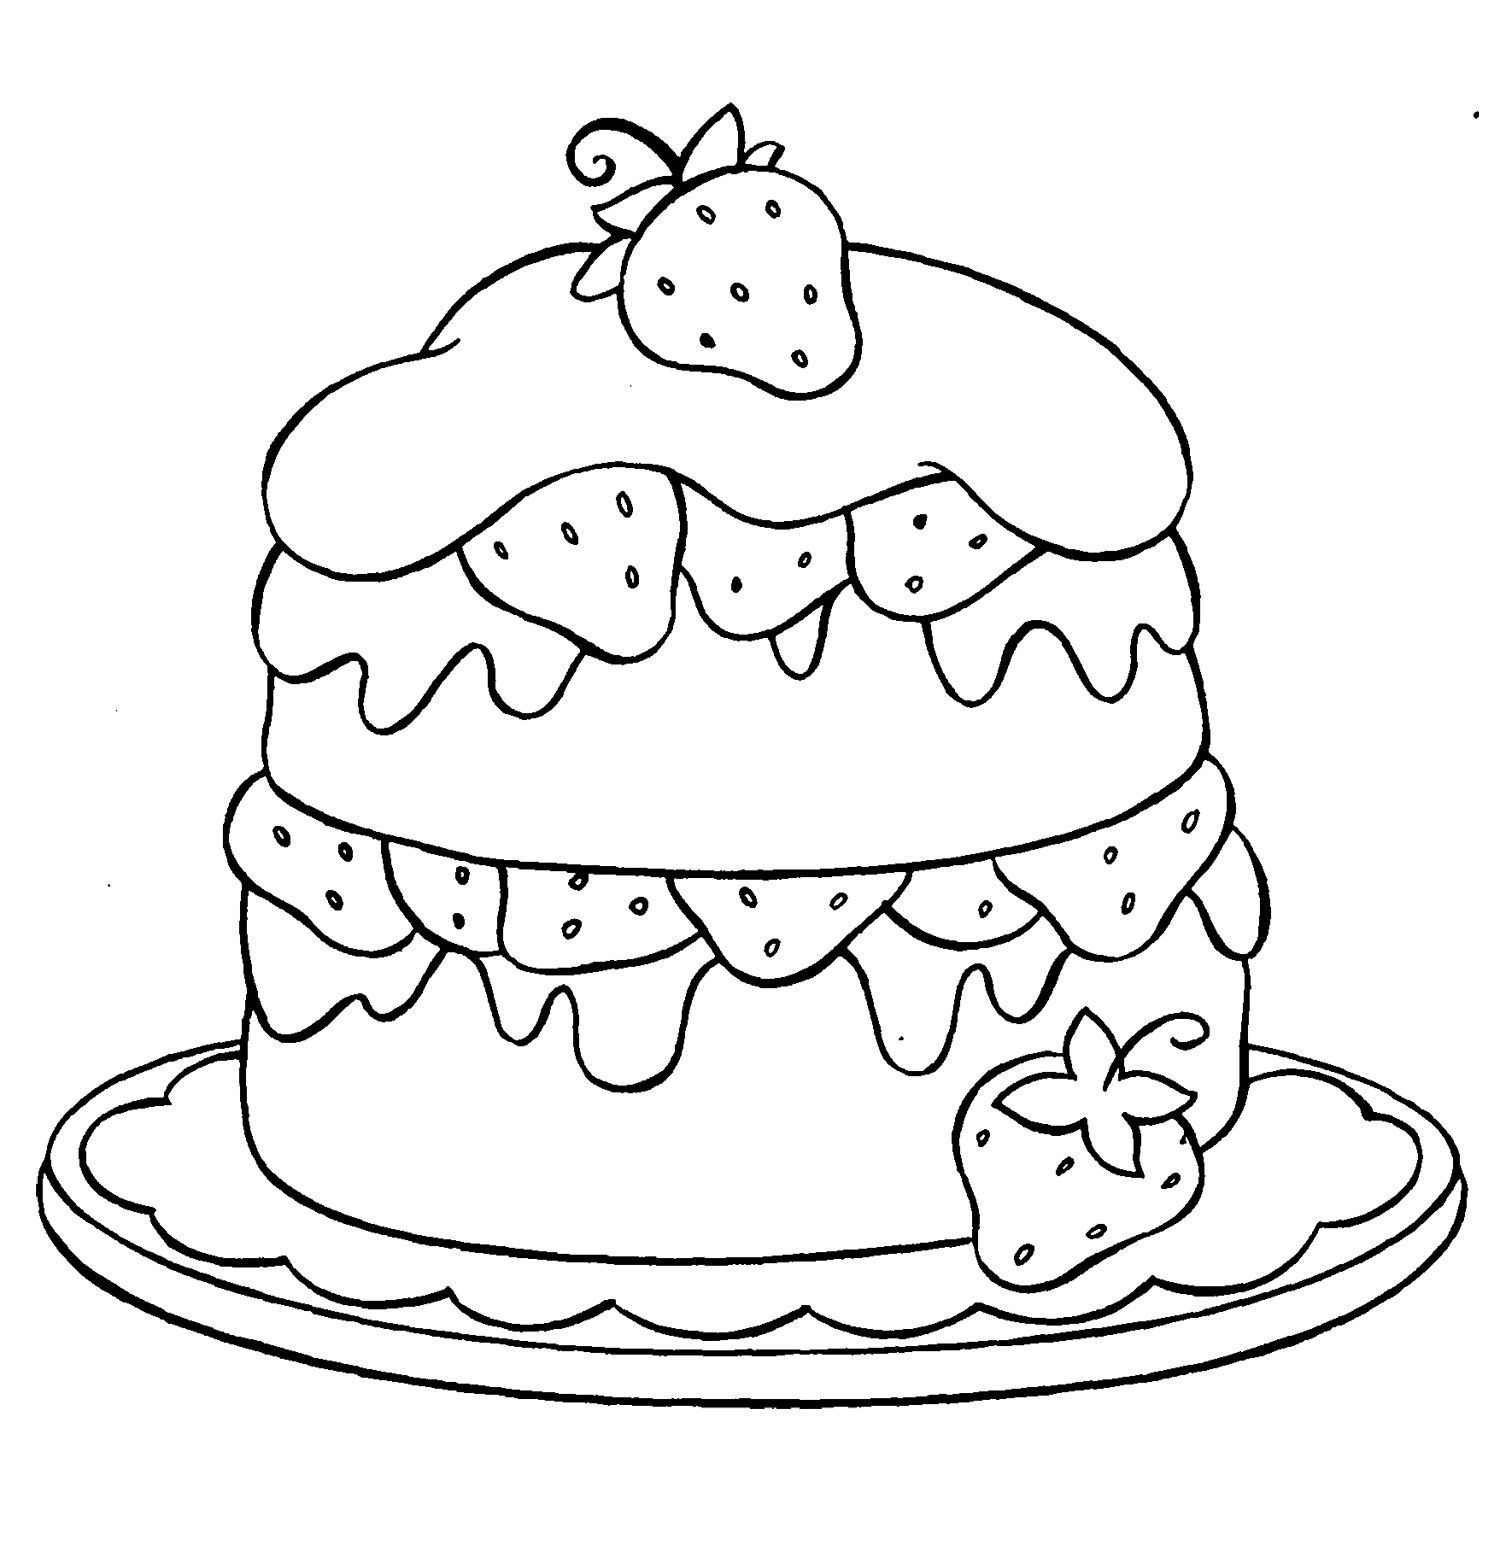 strawberry cake coloring pages strawberry coloring pages best coloring pages for kids cake coloring pages strawberry